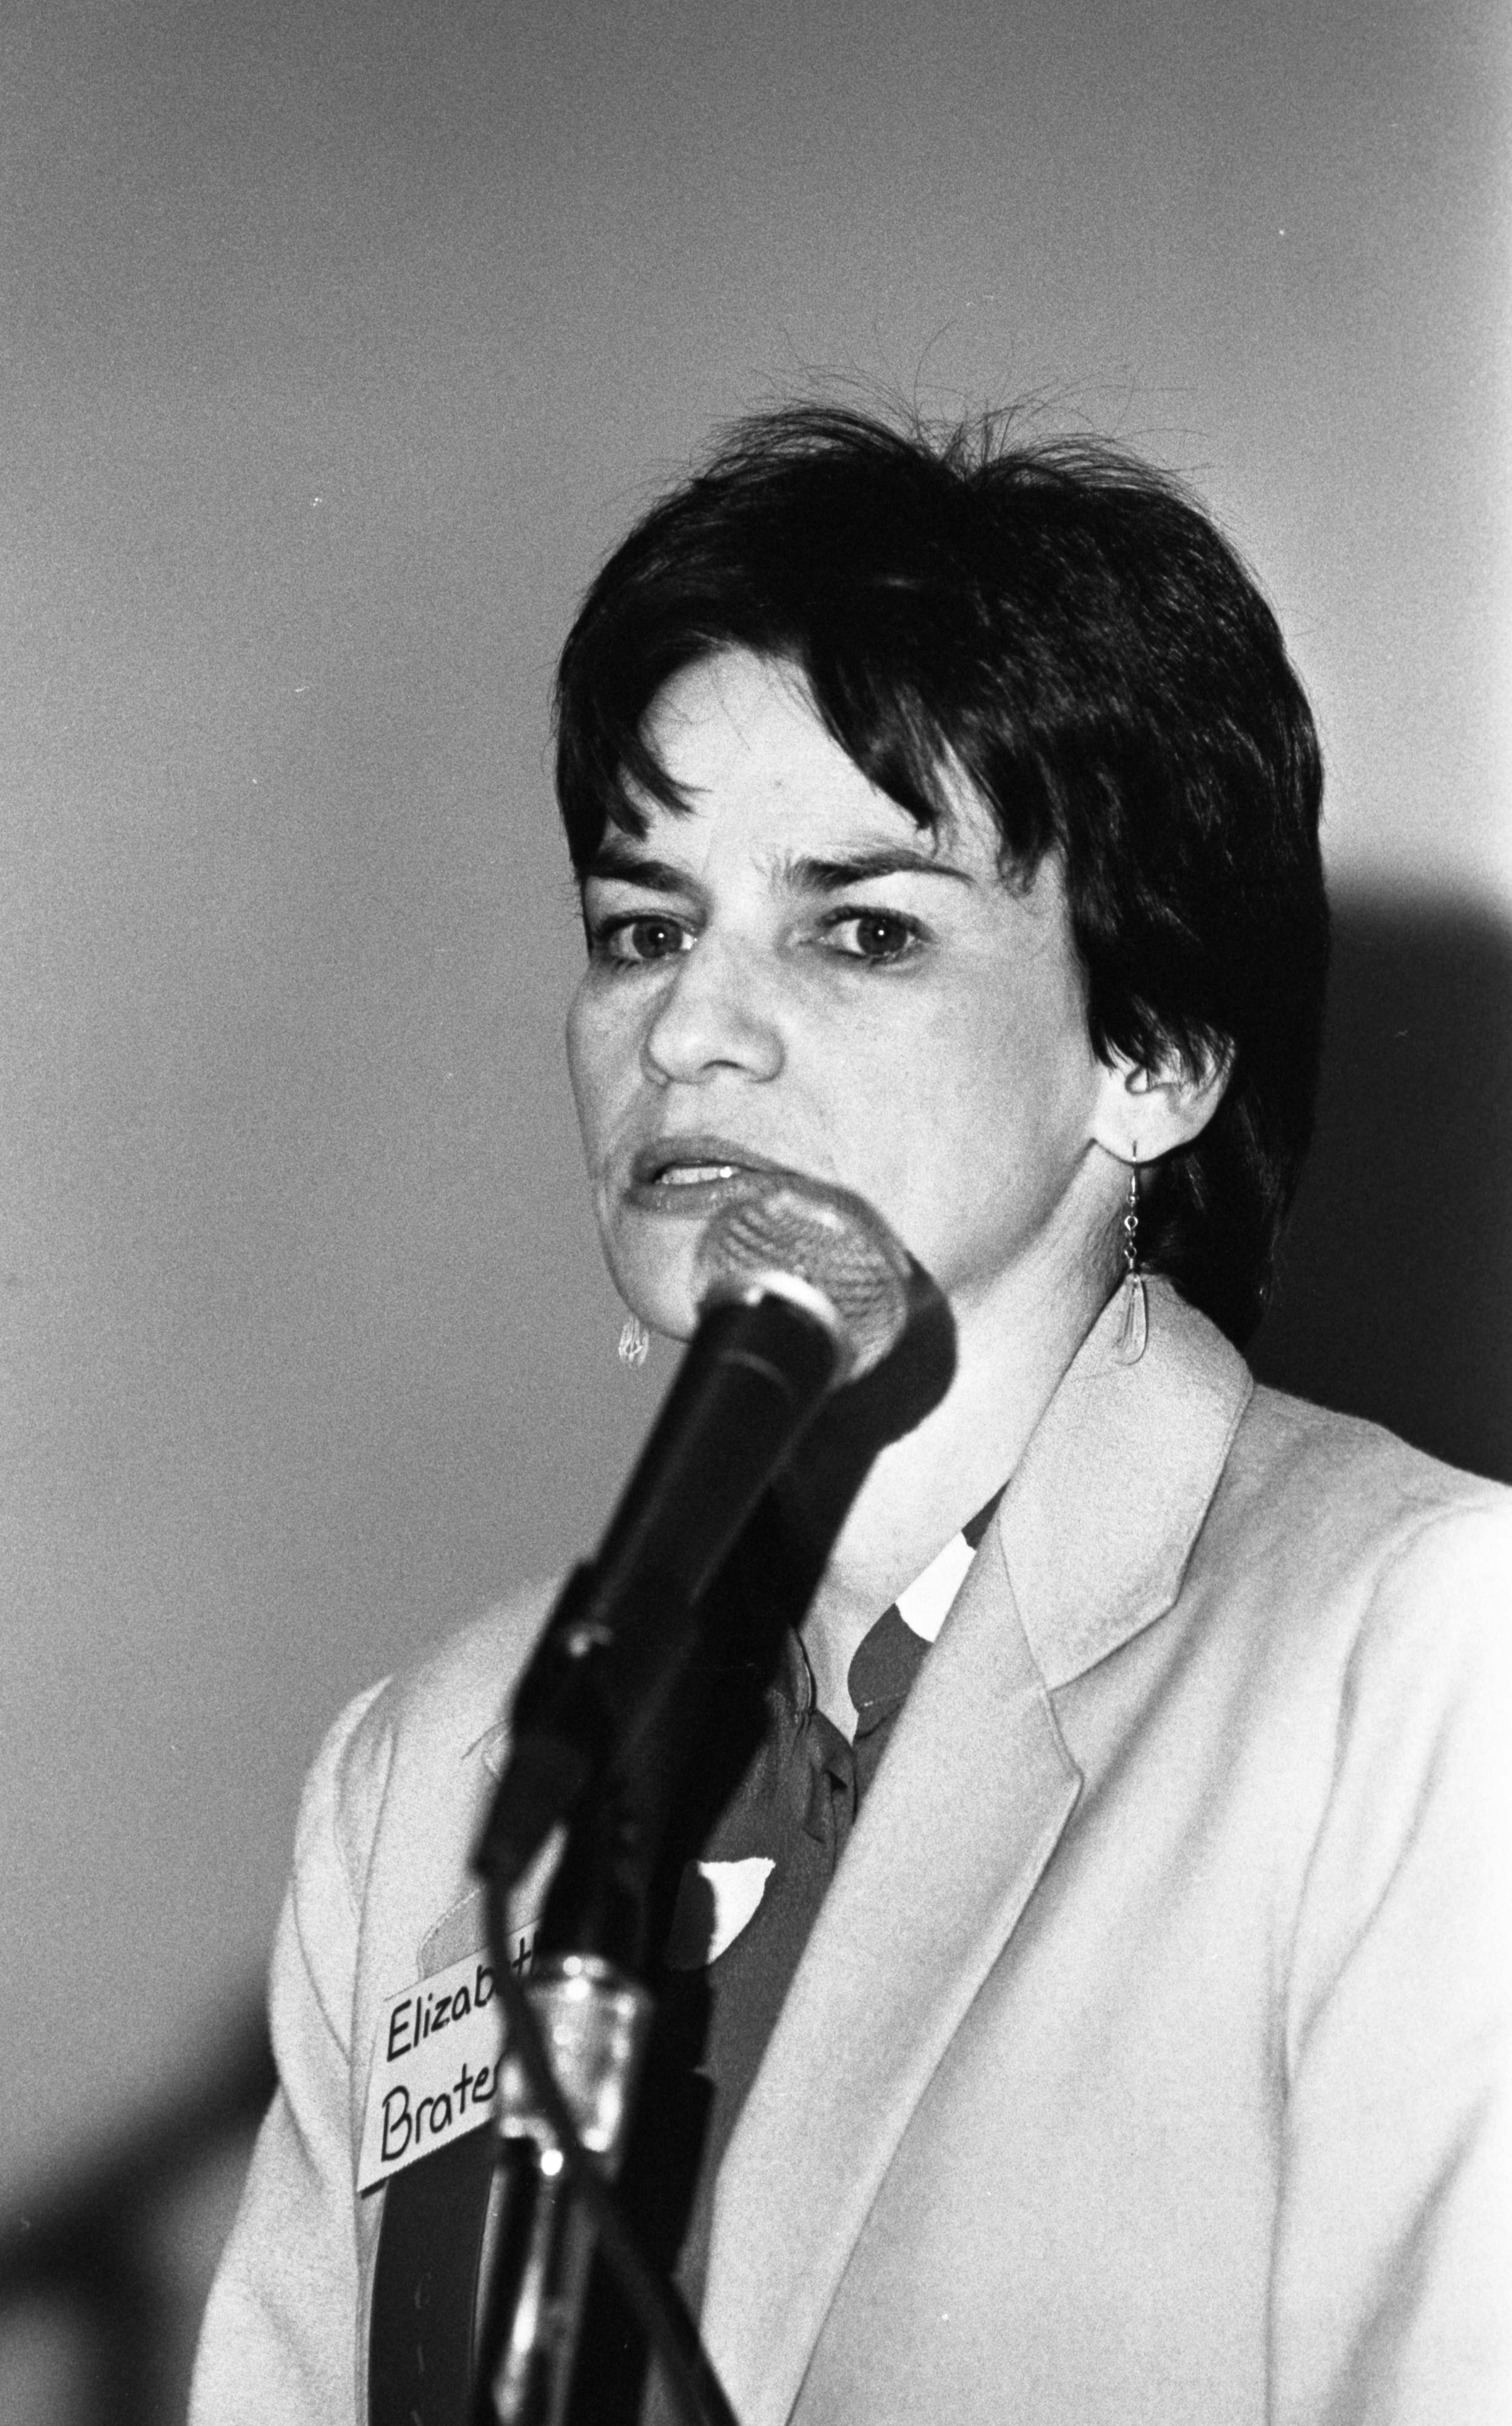 Ann Arbor Candidates- Elizabeth Brater, March 1990 image